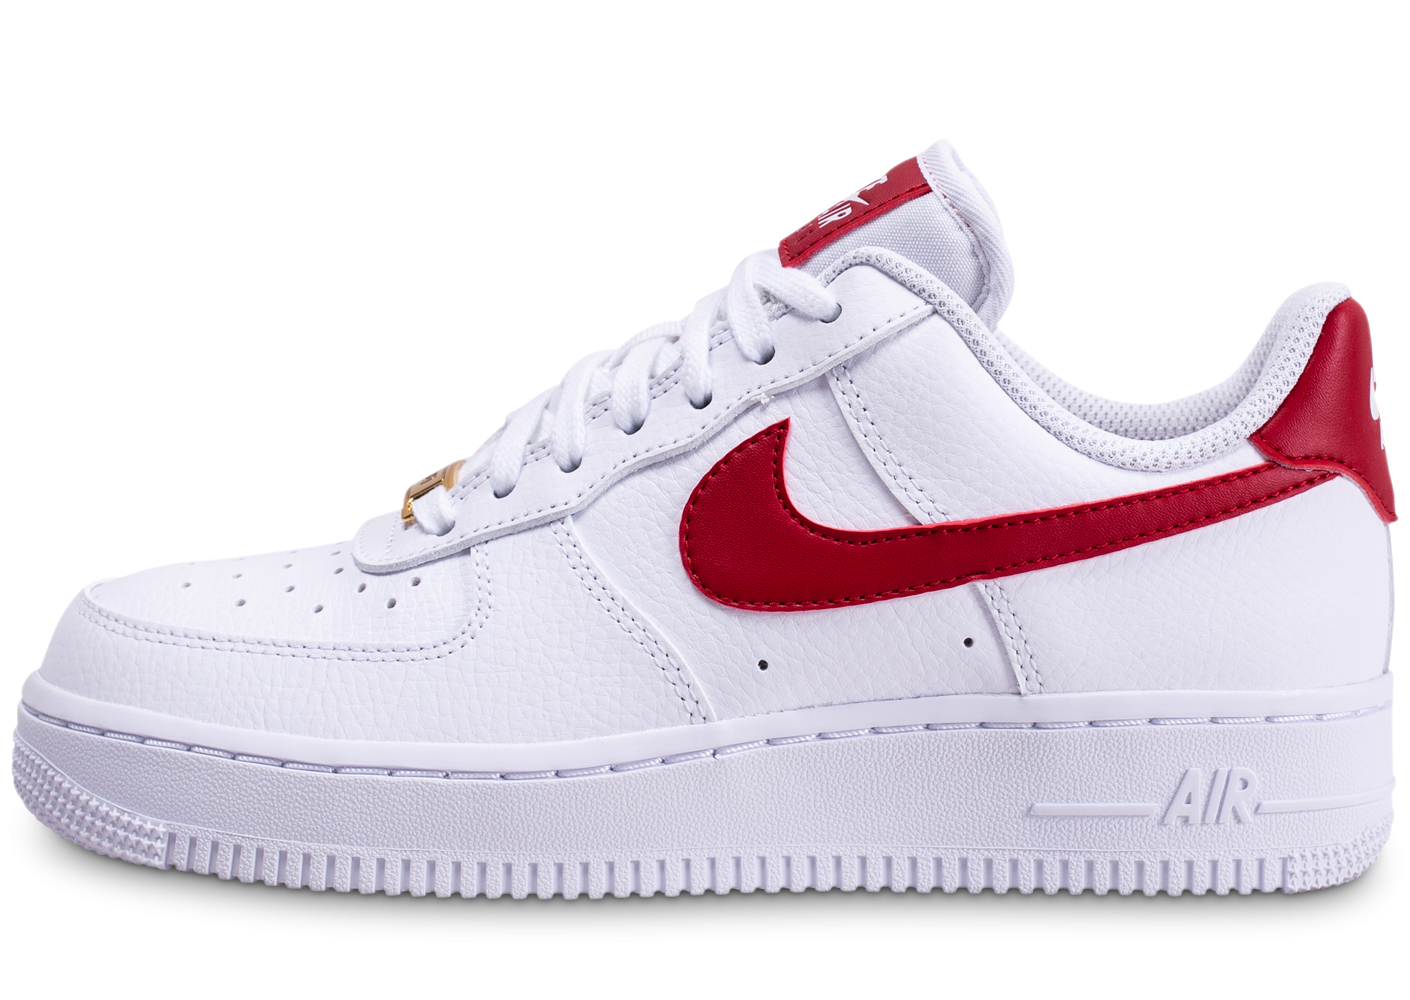 nike air force 1 femme rouge blanc